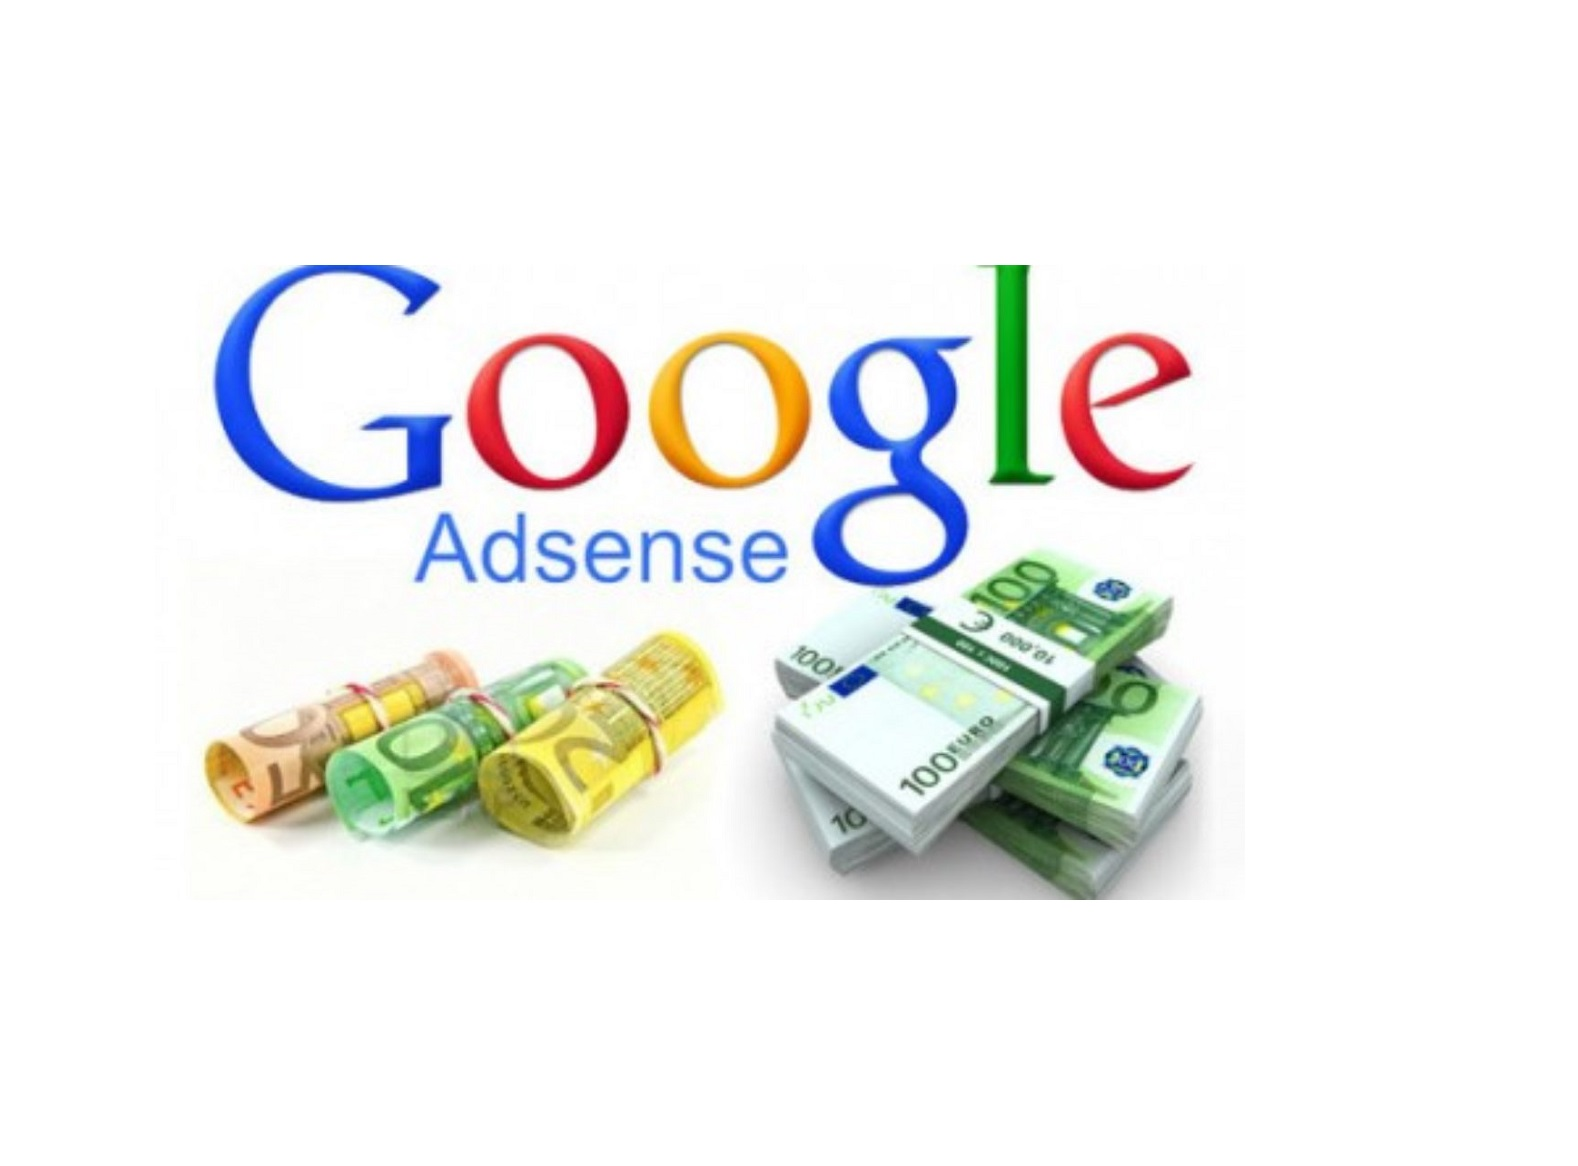 How to get Google Adsense